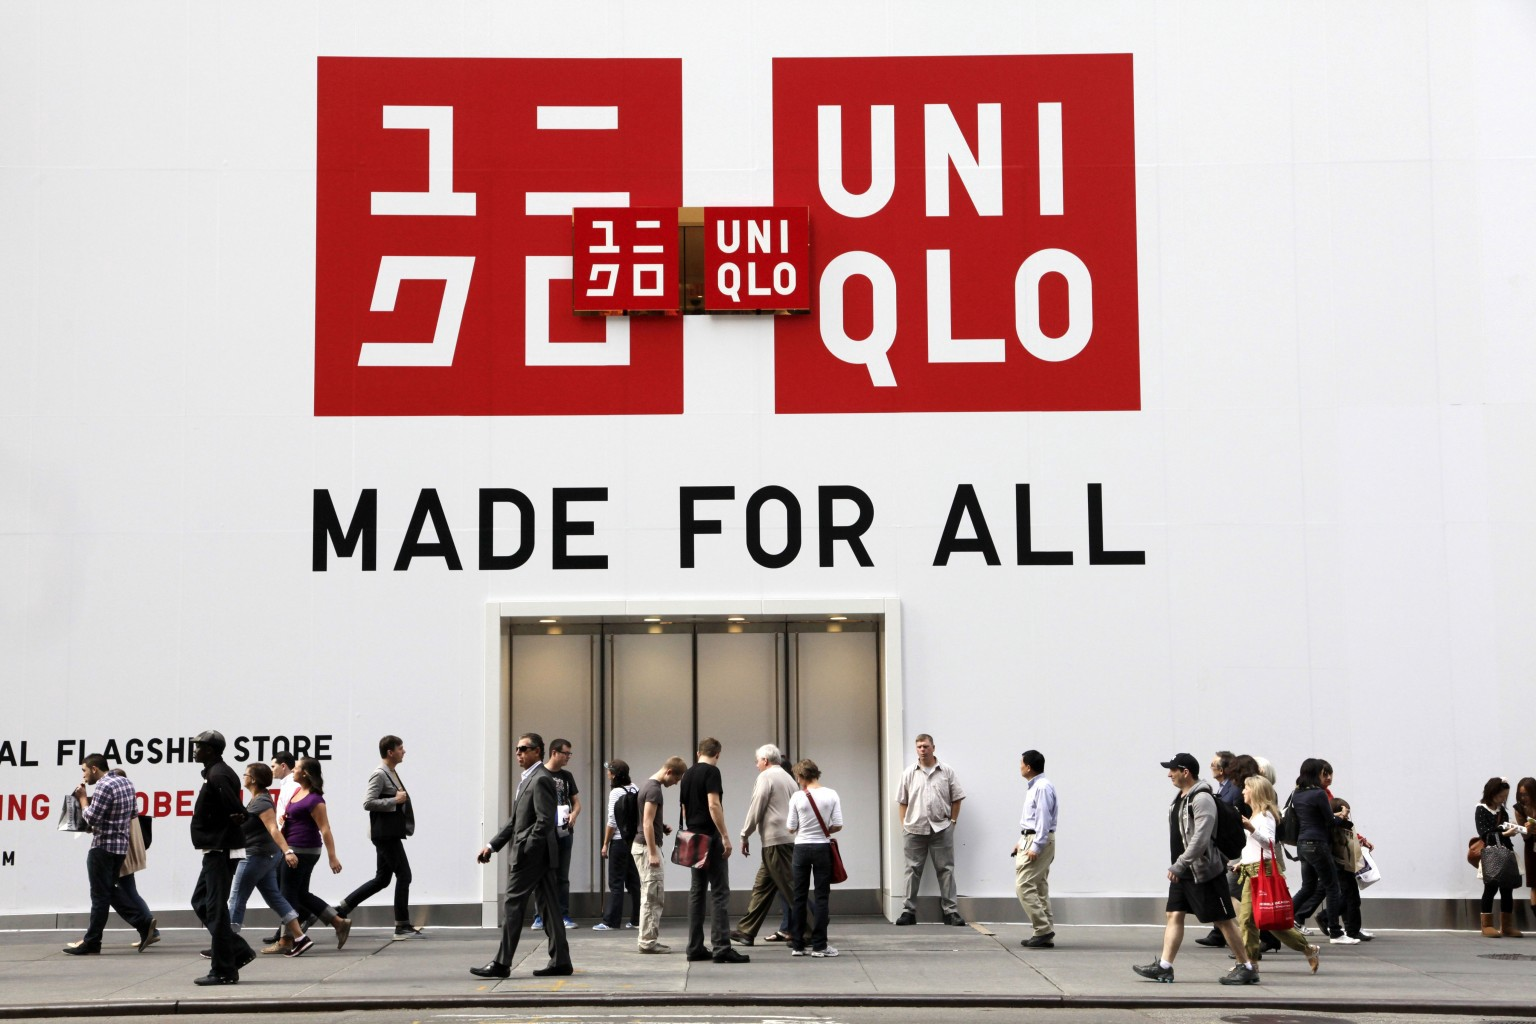 Why UNIQLO failed to dominate US market? – Avex Li – Medium